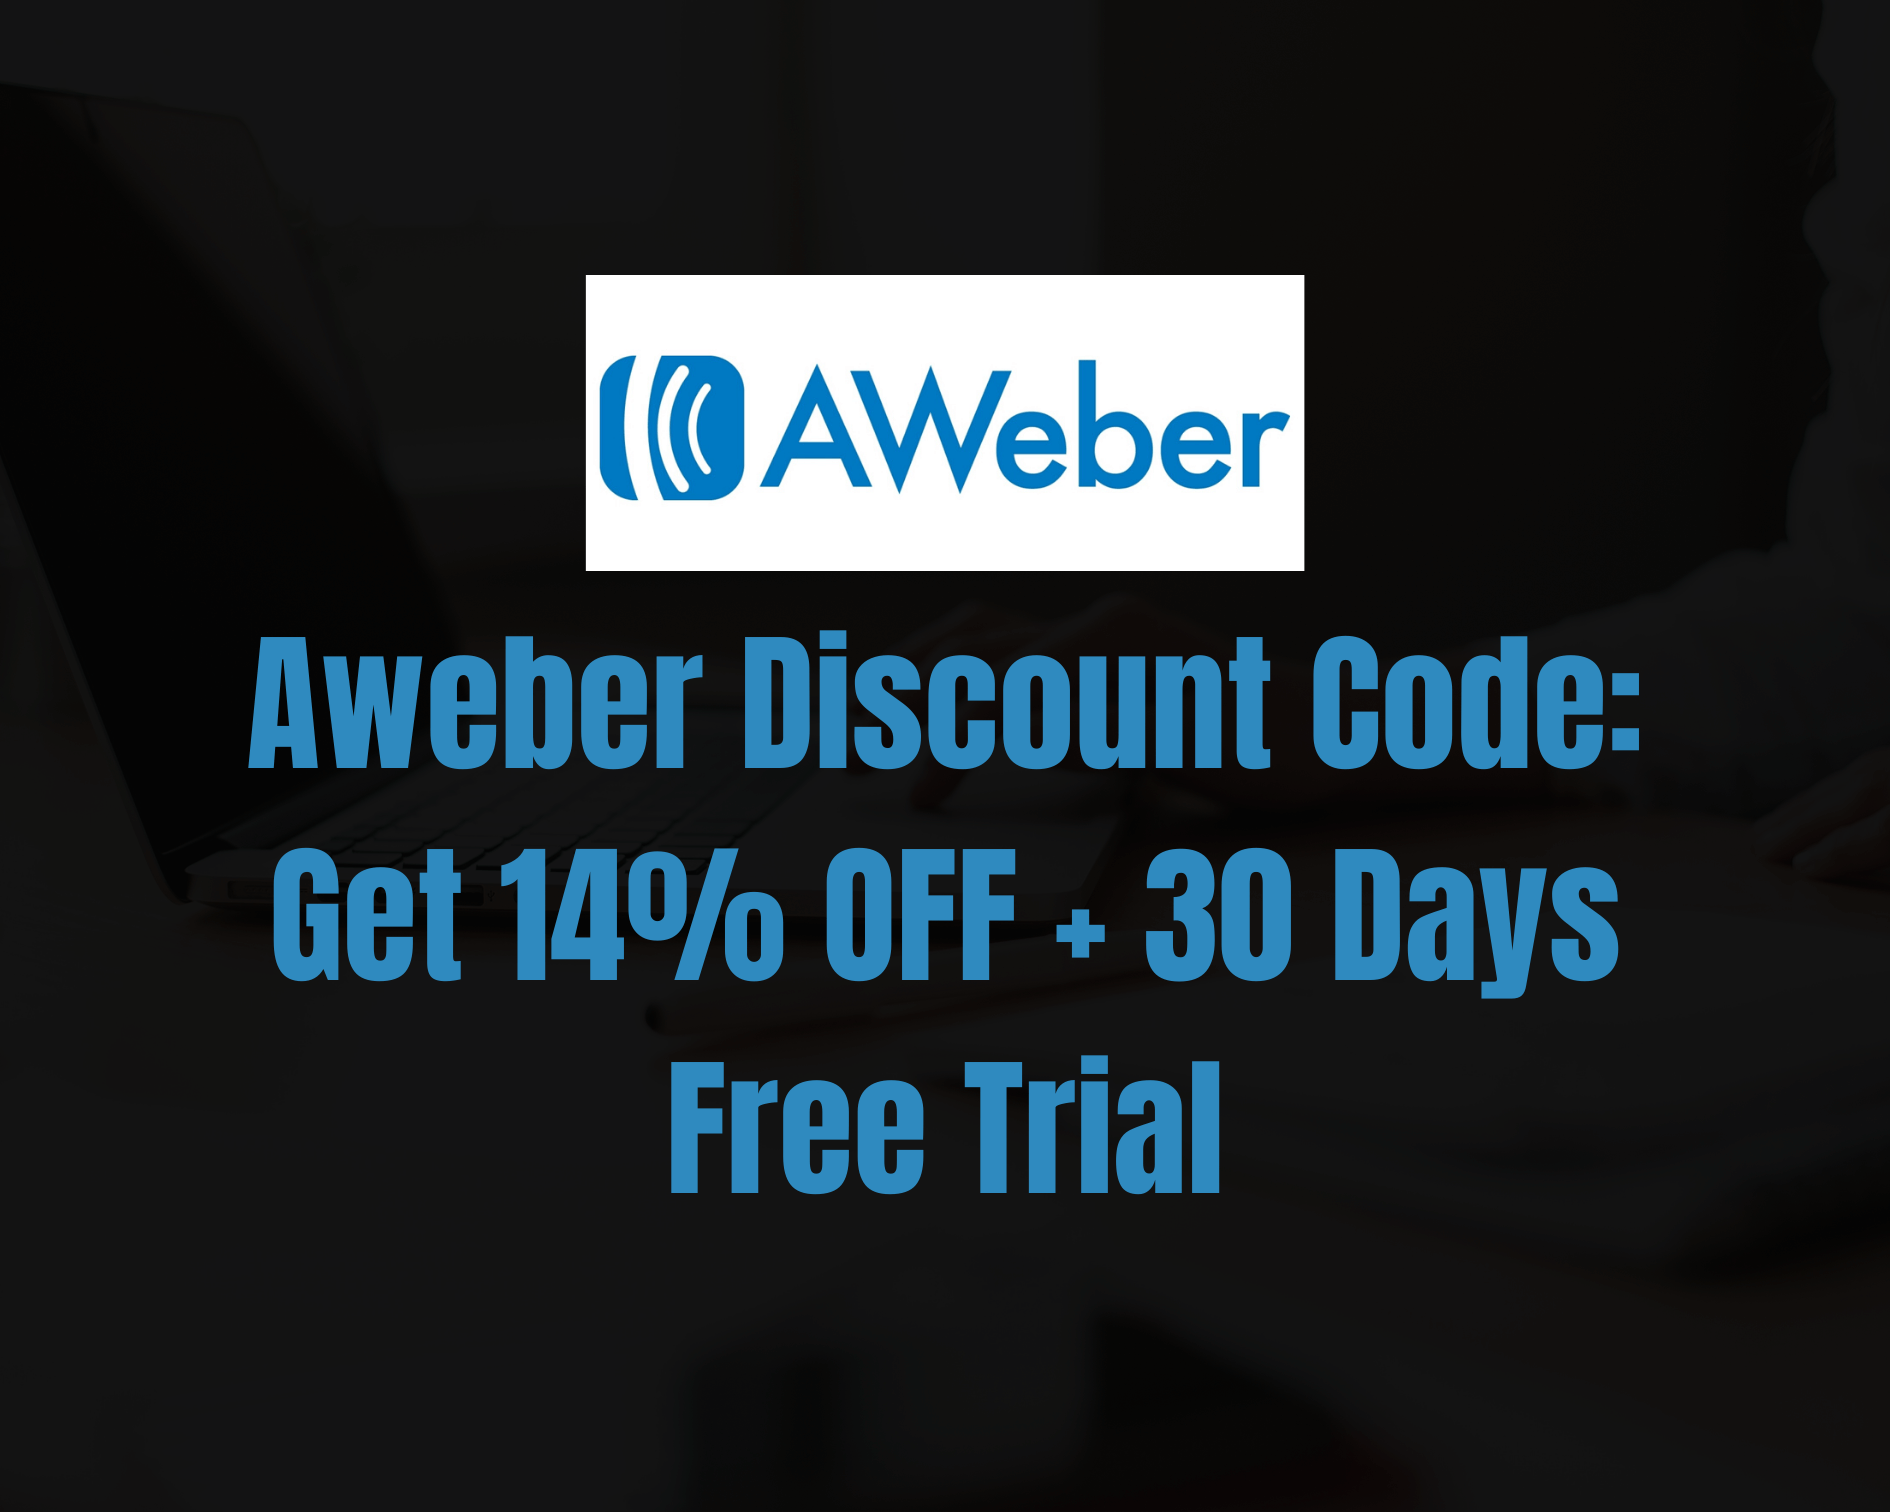 Aweber Discount Code: Get 14% OFF + Free Trial